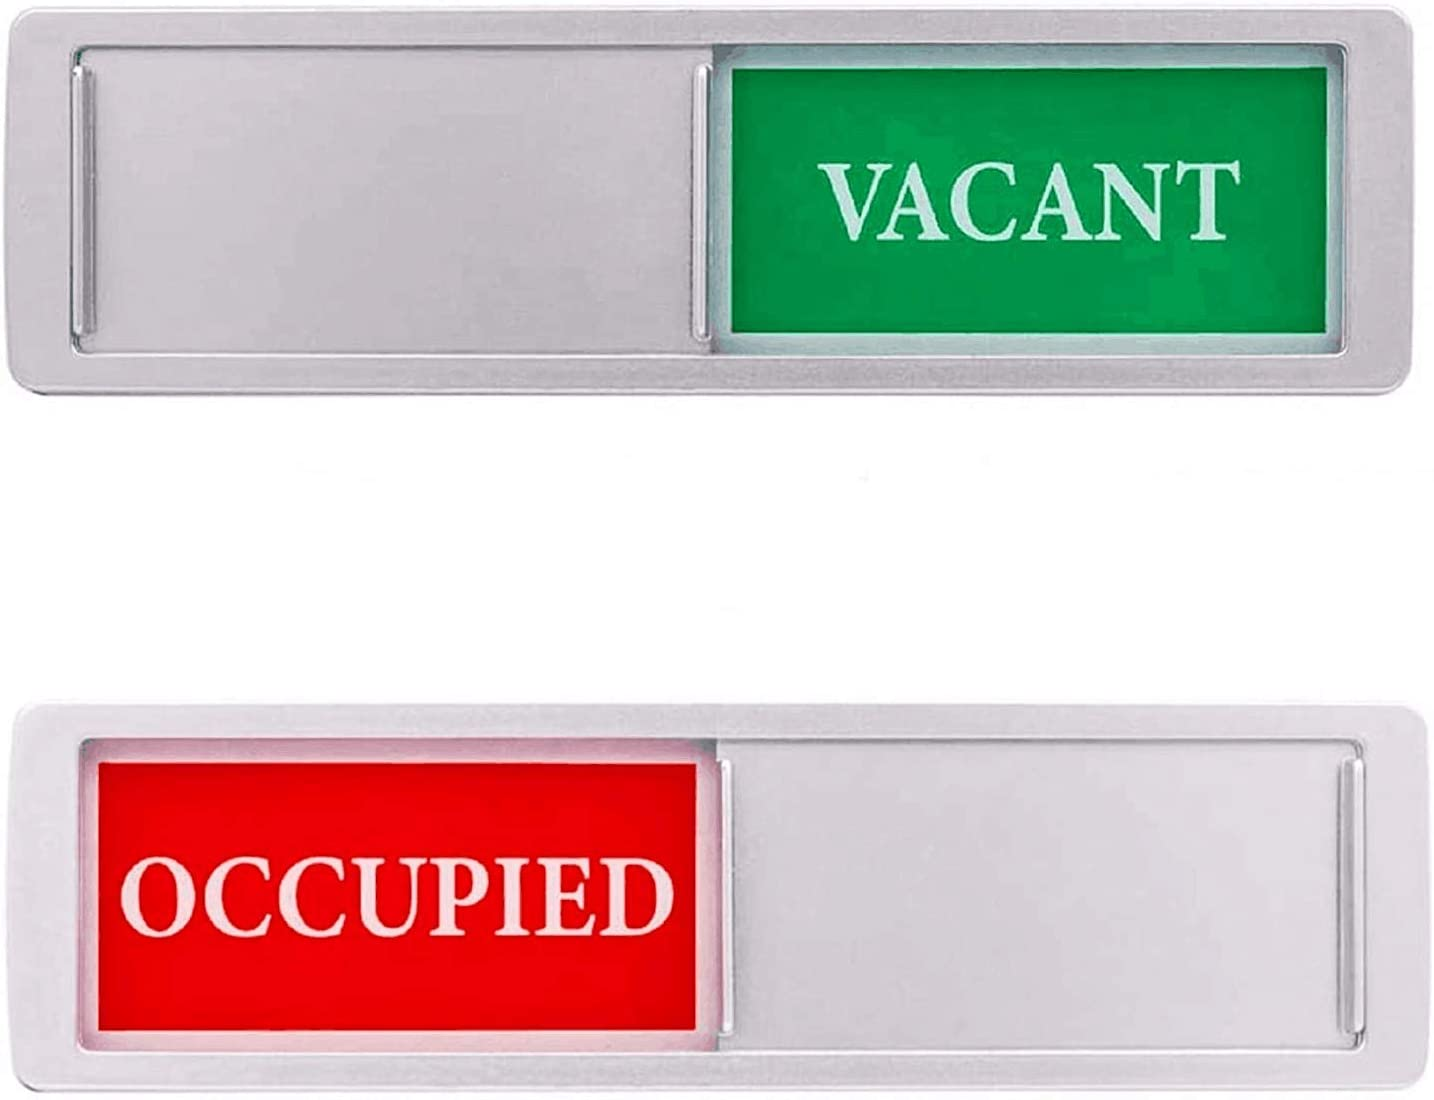 Privacy Sign, Vacant Occupied Sign for Home Office Bathroom Restroom Conference Hotels Hospital, Privacy Slide Door Sign Indicator Tells Whether Room Vacant or Occupied, 7'' x 2'' - Silver